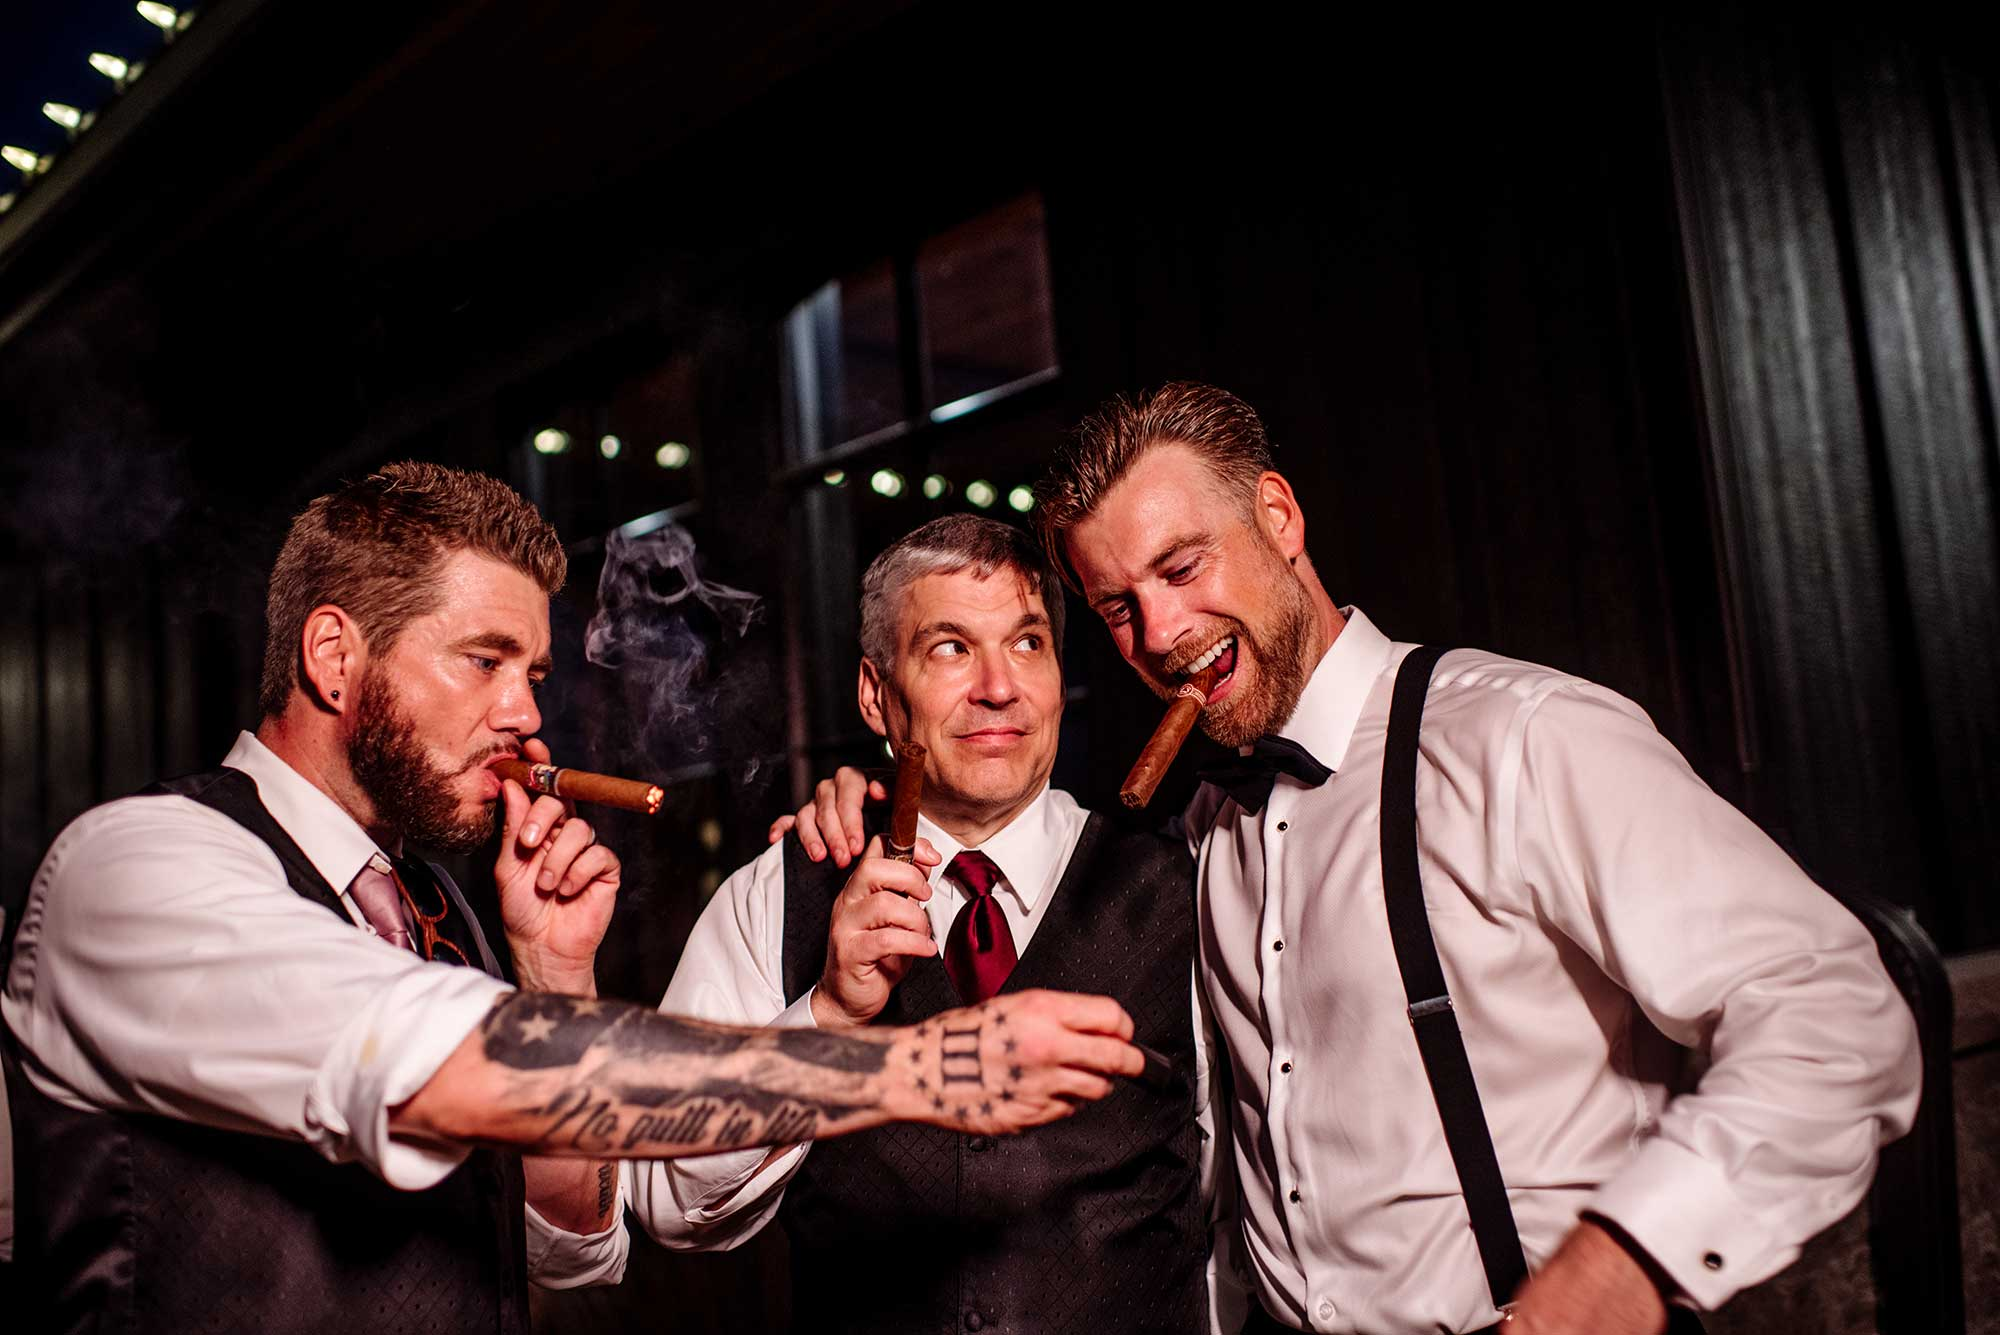 Groomsmen with cigars at end of the night at 7 vines vinyard wedding mn